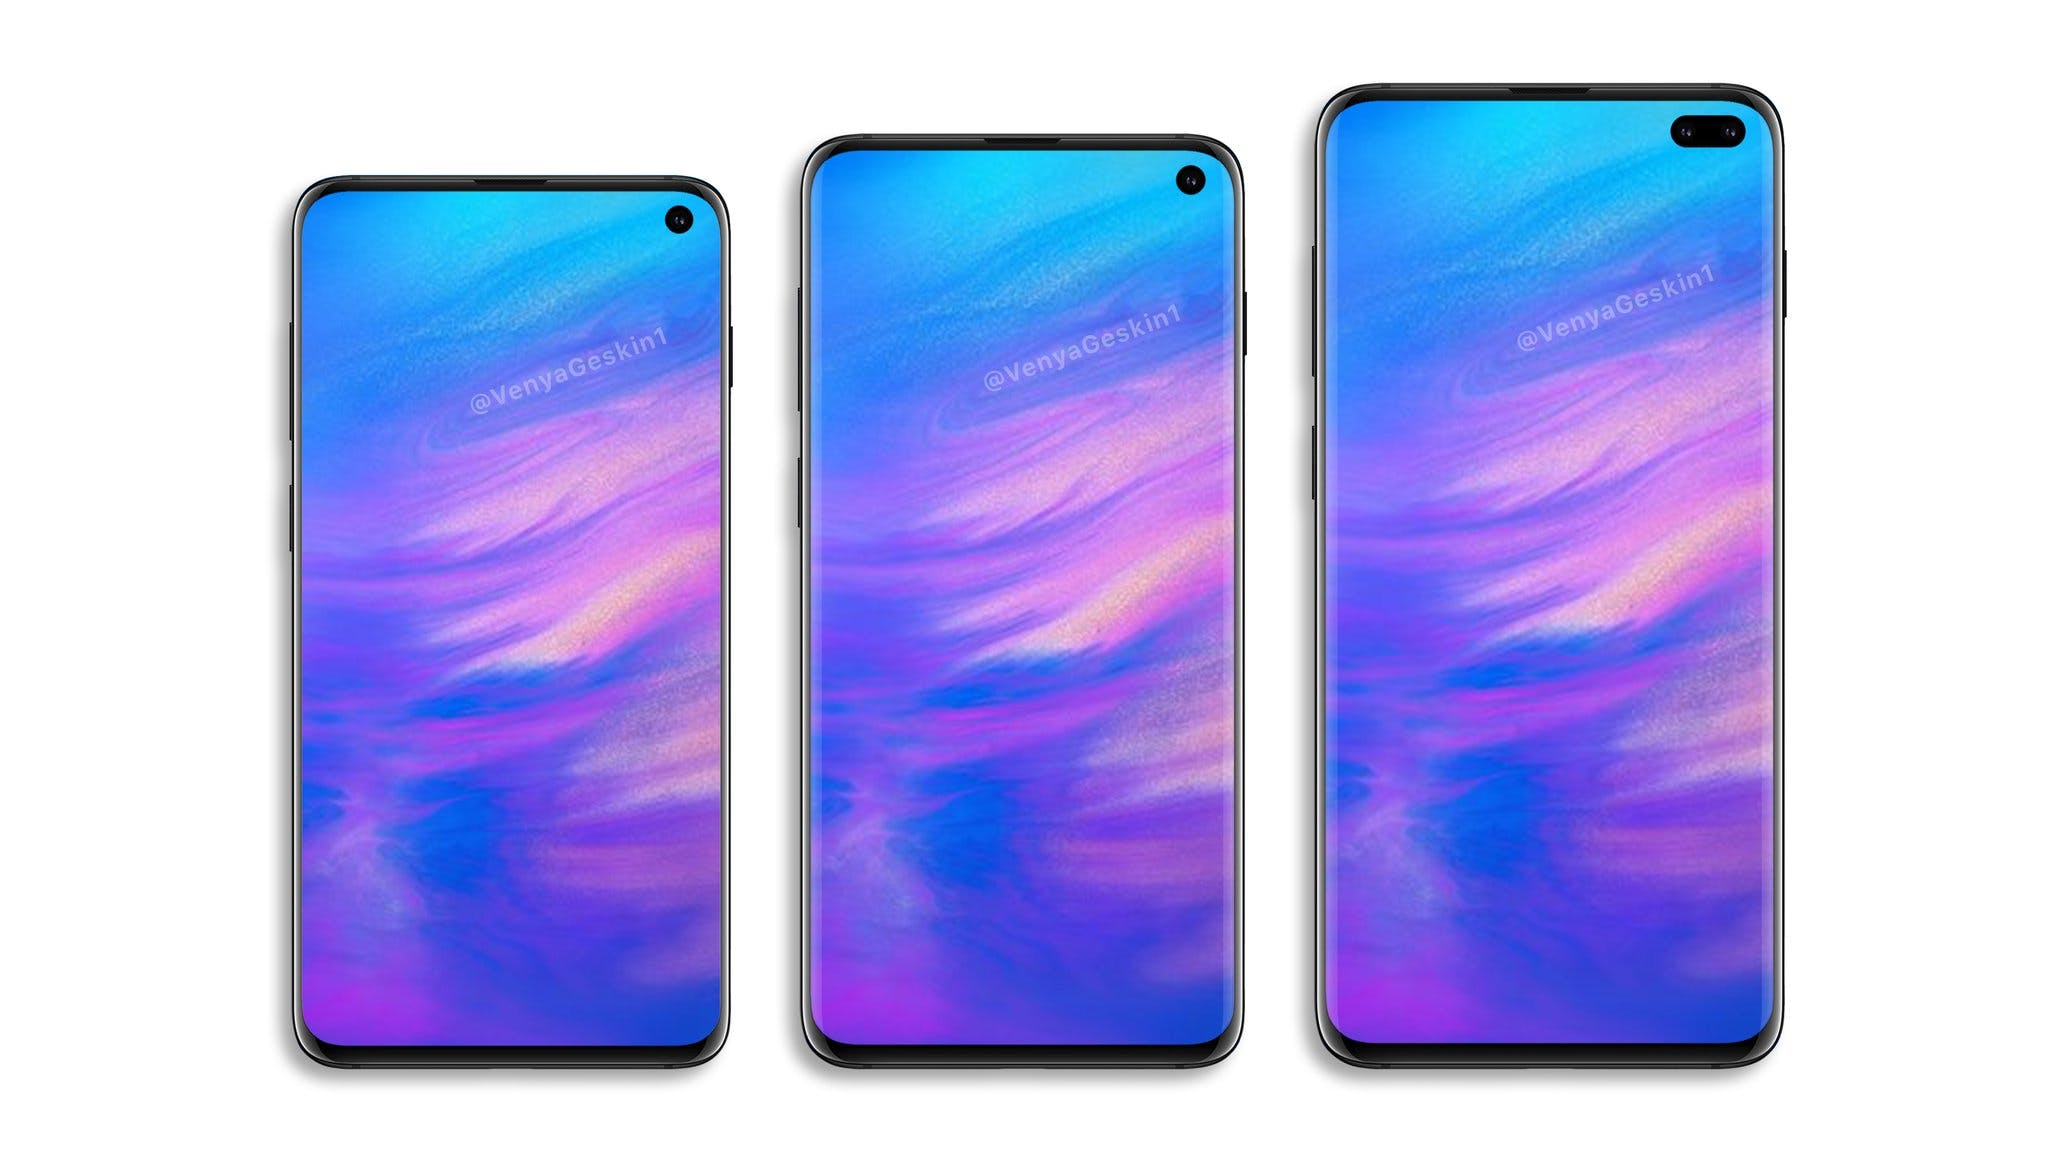 Samsung Galaxy S10 Lite, S10, S10 Plus Concepts By @VenyaGeskin1 Twitter